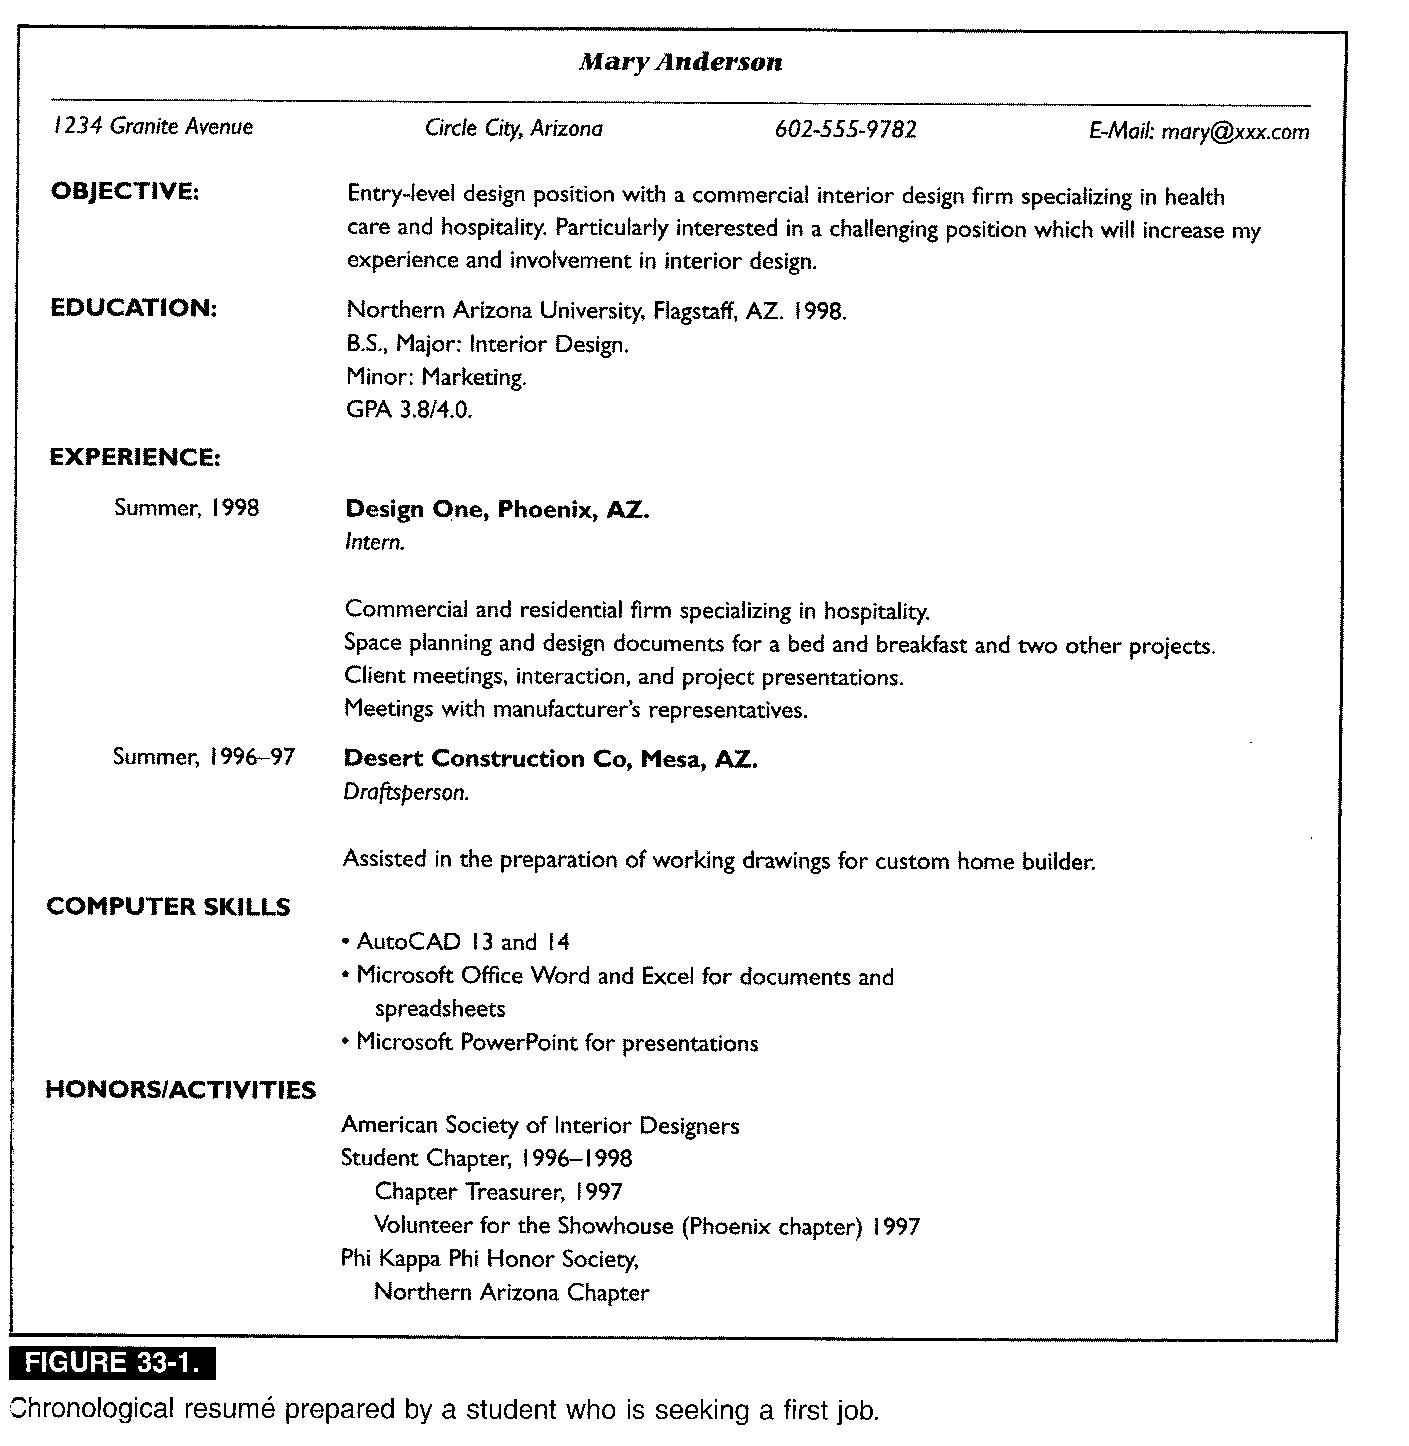 006 Cover Letter Collegeay Tutor Resume Tutoring With Narrative Format Writing Teacher Bartender Words Biodata Job Title First Time Teaching Math English Language Waitress New Unforgettable College Essay Jobs Nyc Online Full